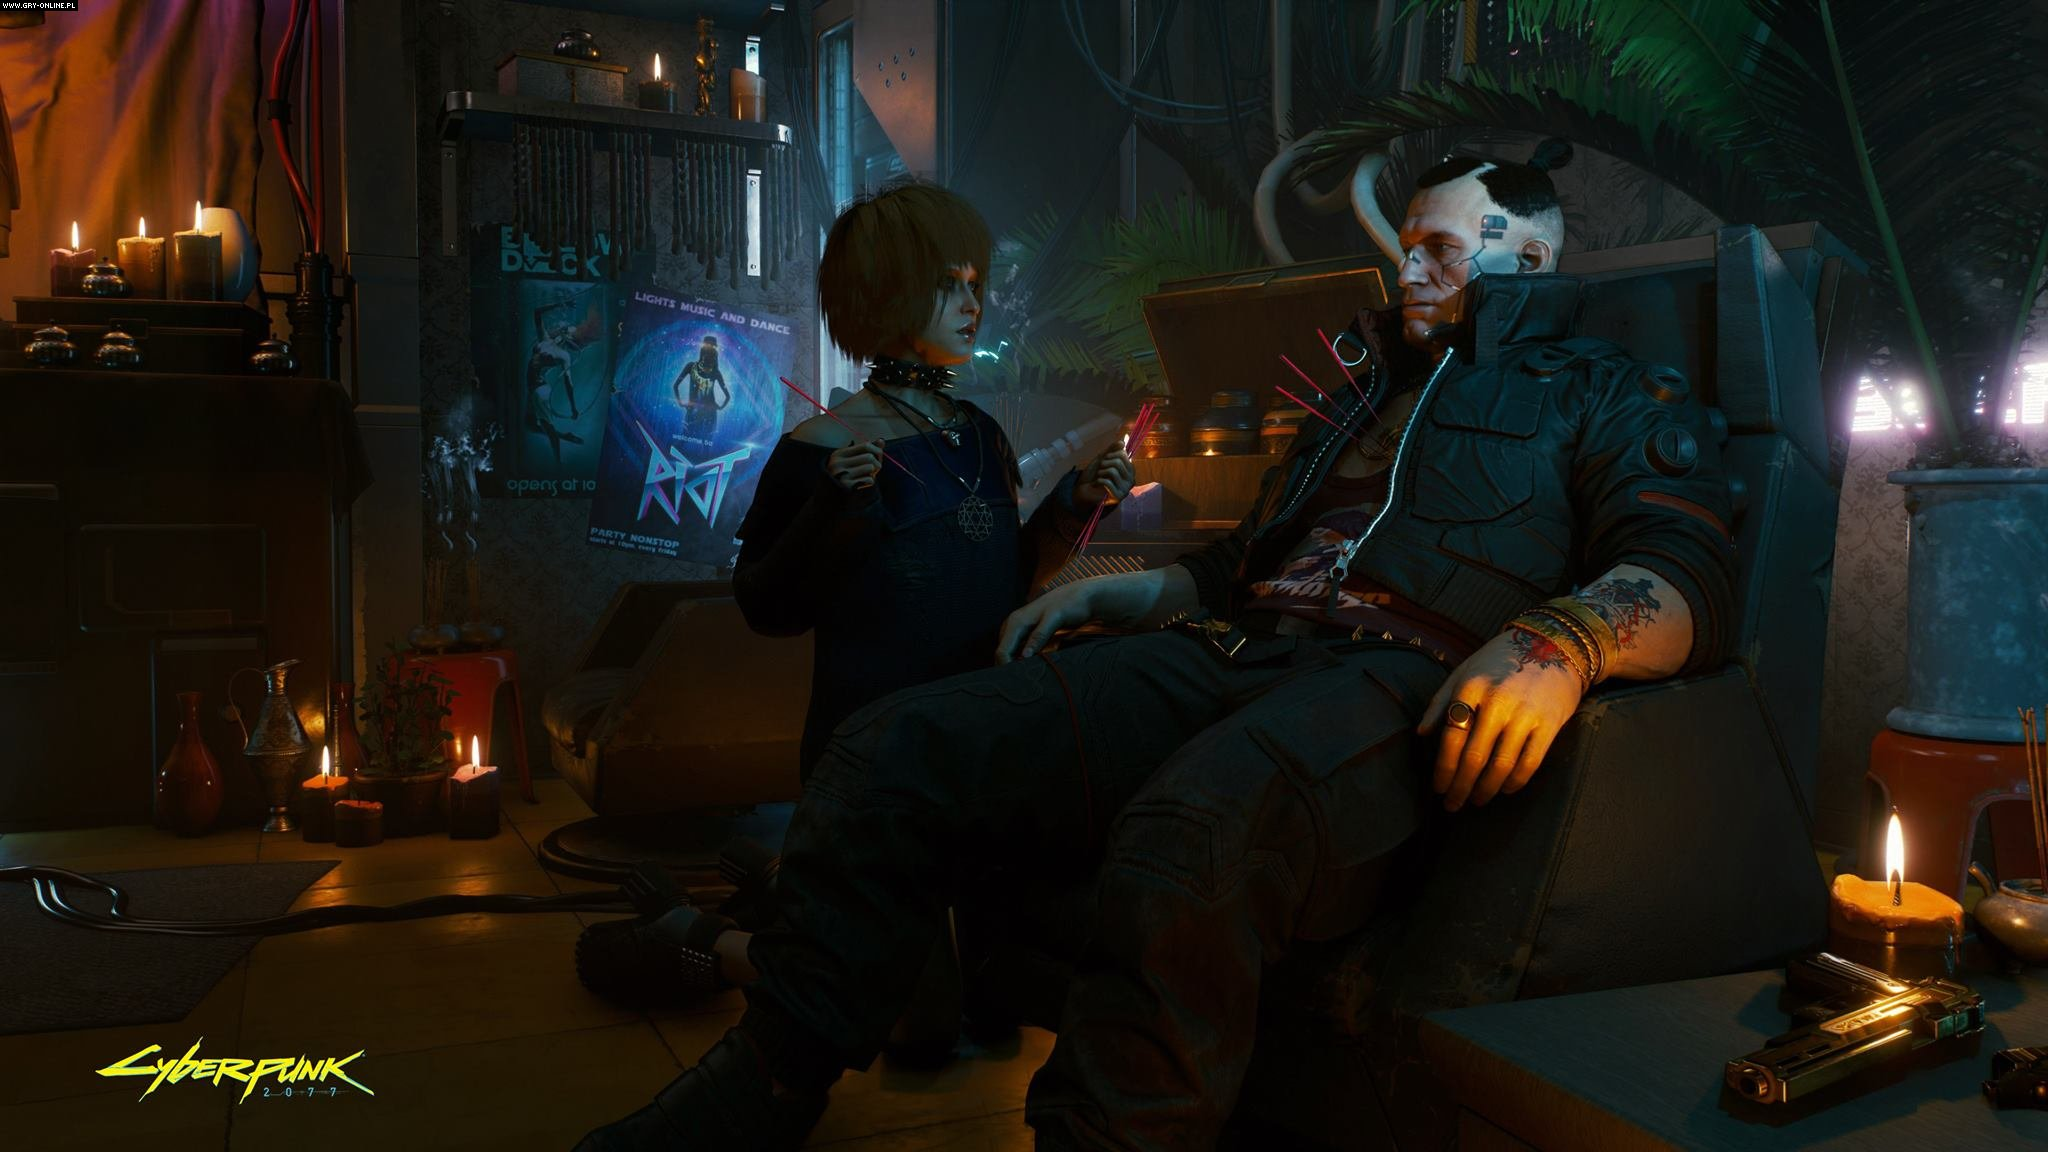 Cyberpunk 2077 PC, PS4, XONE Gry Screen 1/38, CD Projekt RED